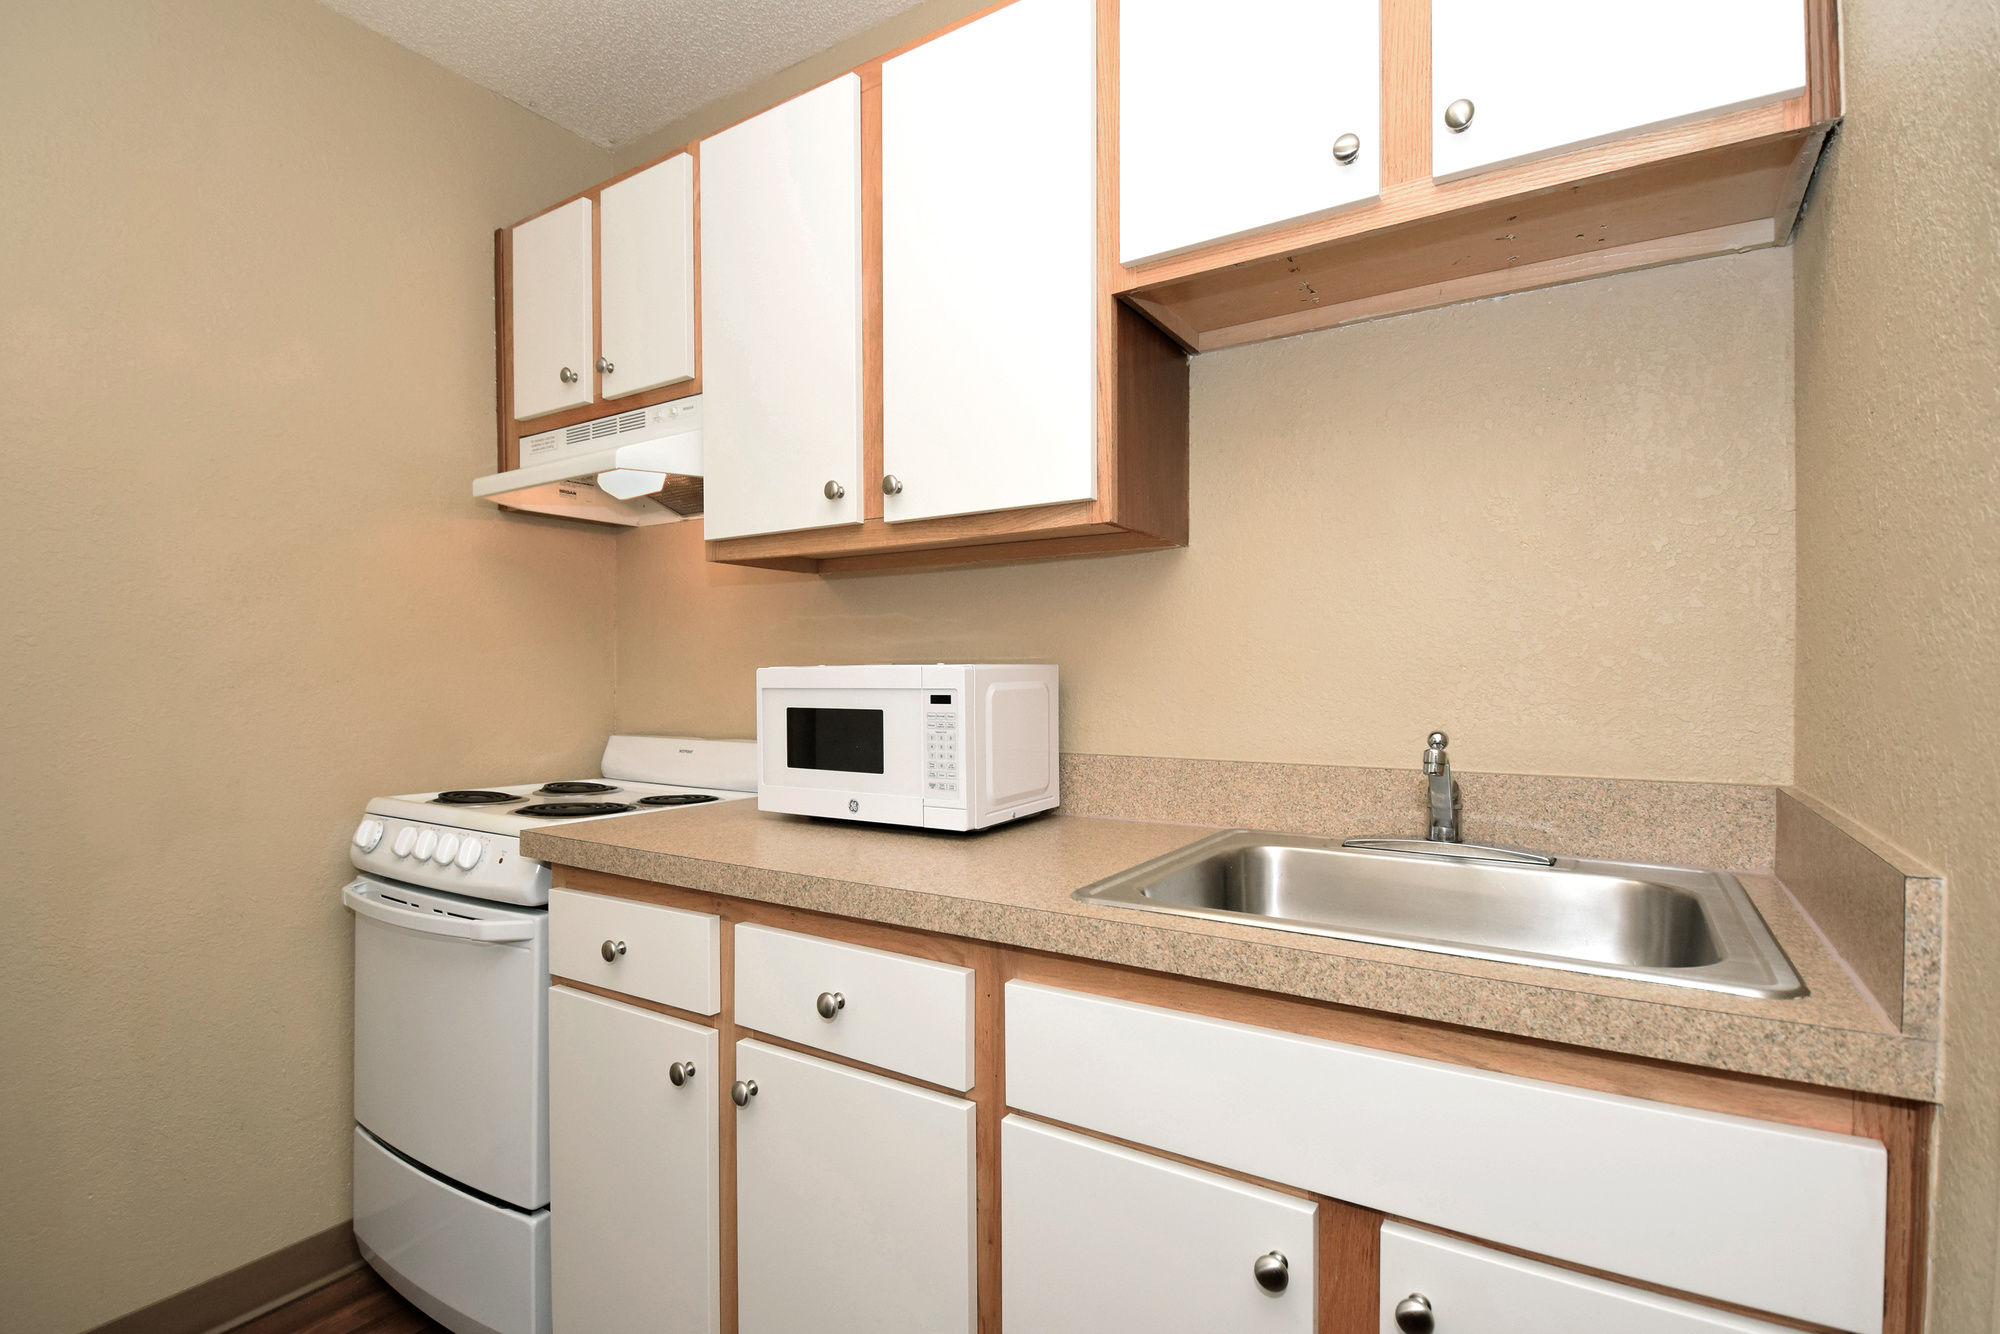 Extended Stay America - Montgomery - Carmichael Rd. in Montgomery, AL